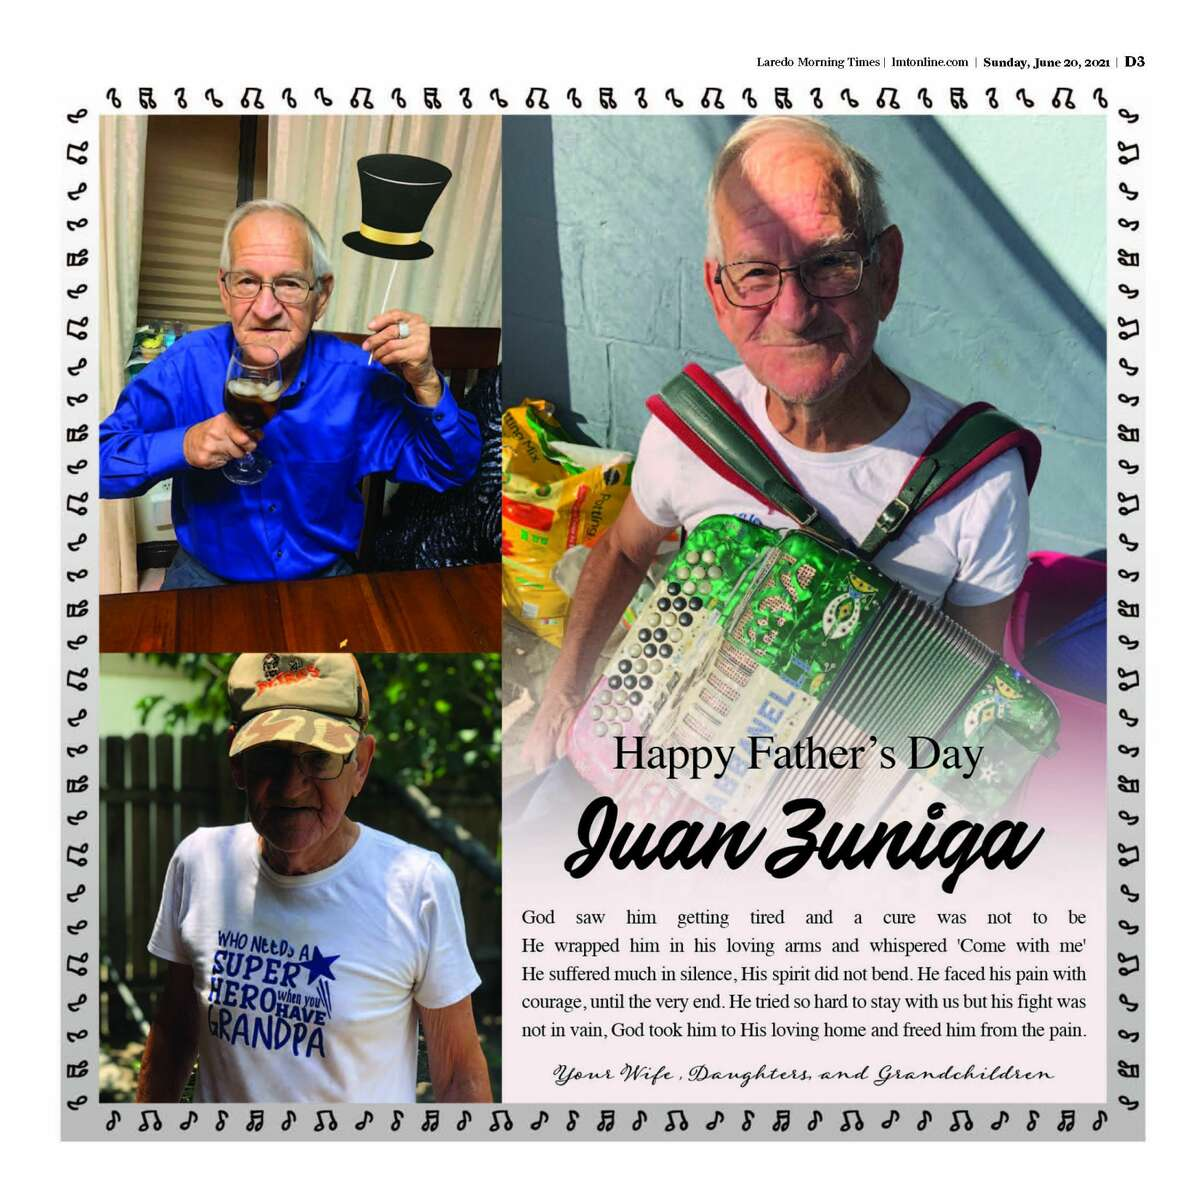 LMT readers celebrated their dads in our Fathers' Day special section.